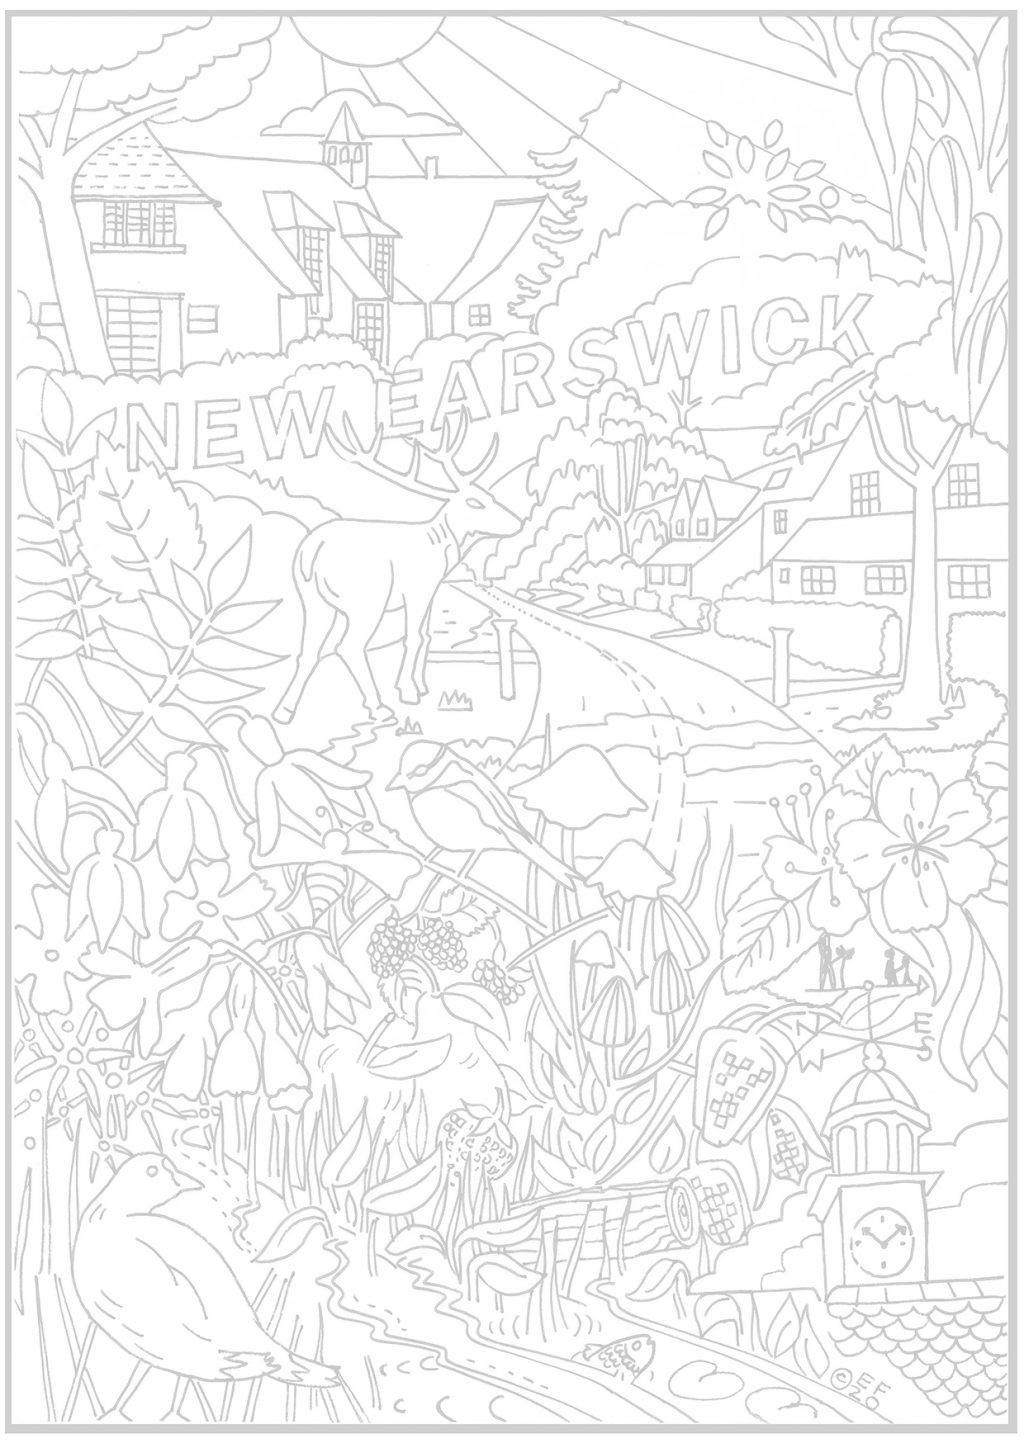 New_Earswick_Colouring_Sheet_Liz_Foster_20_grey_lr